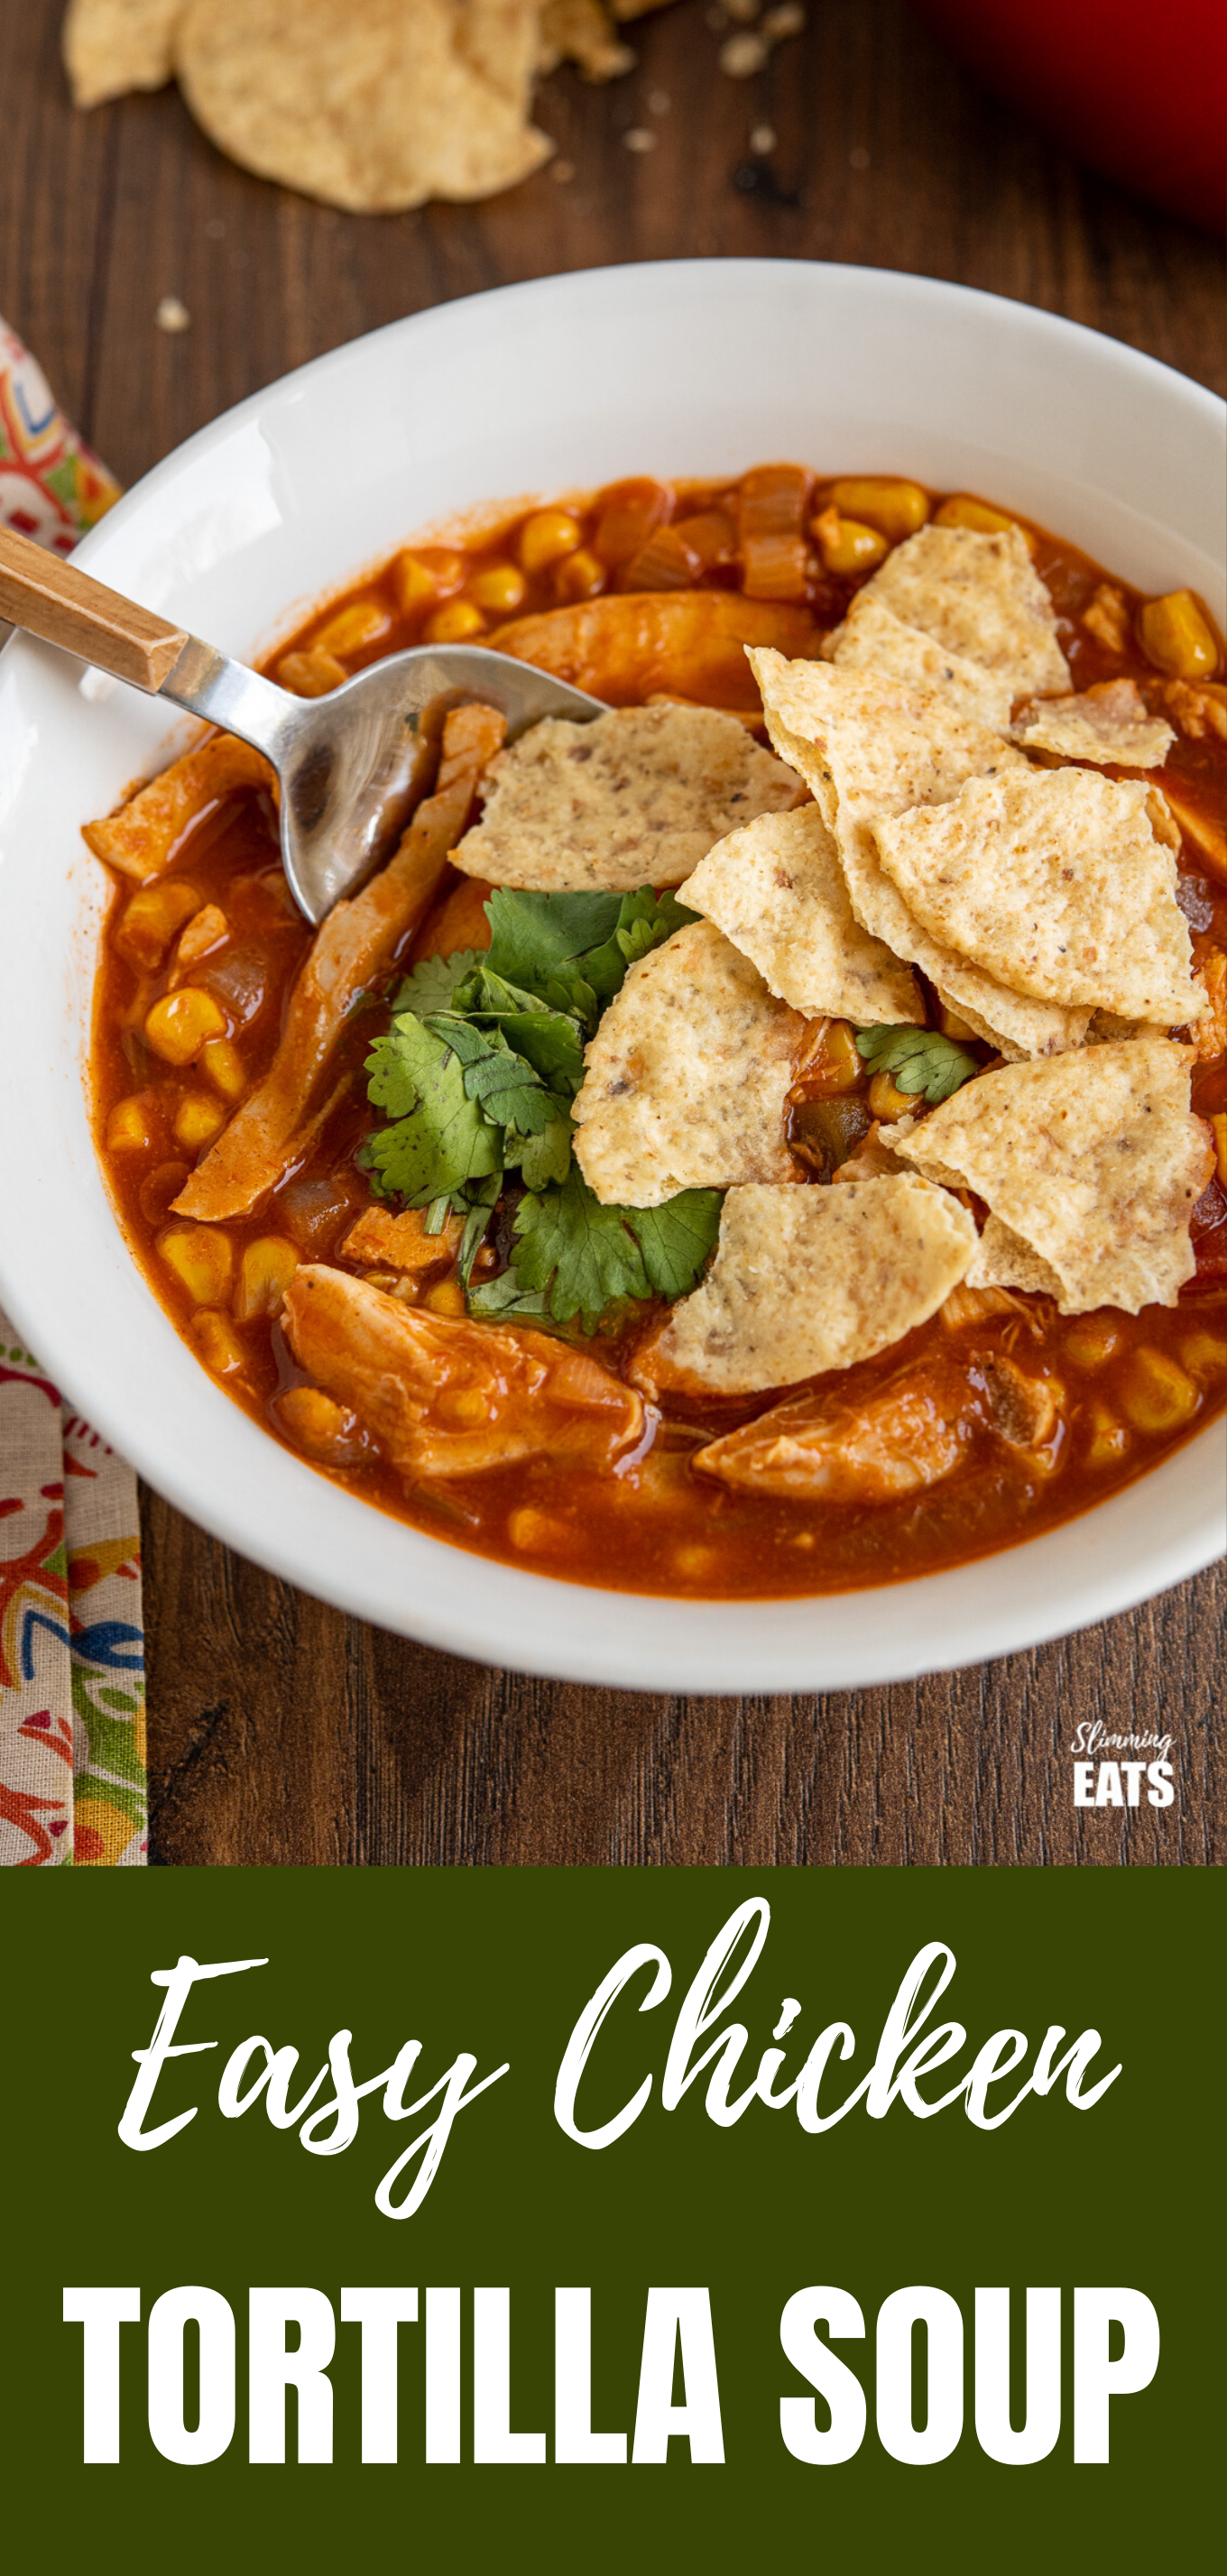 Easy Chicken Tortilla Soup featured pin image